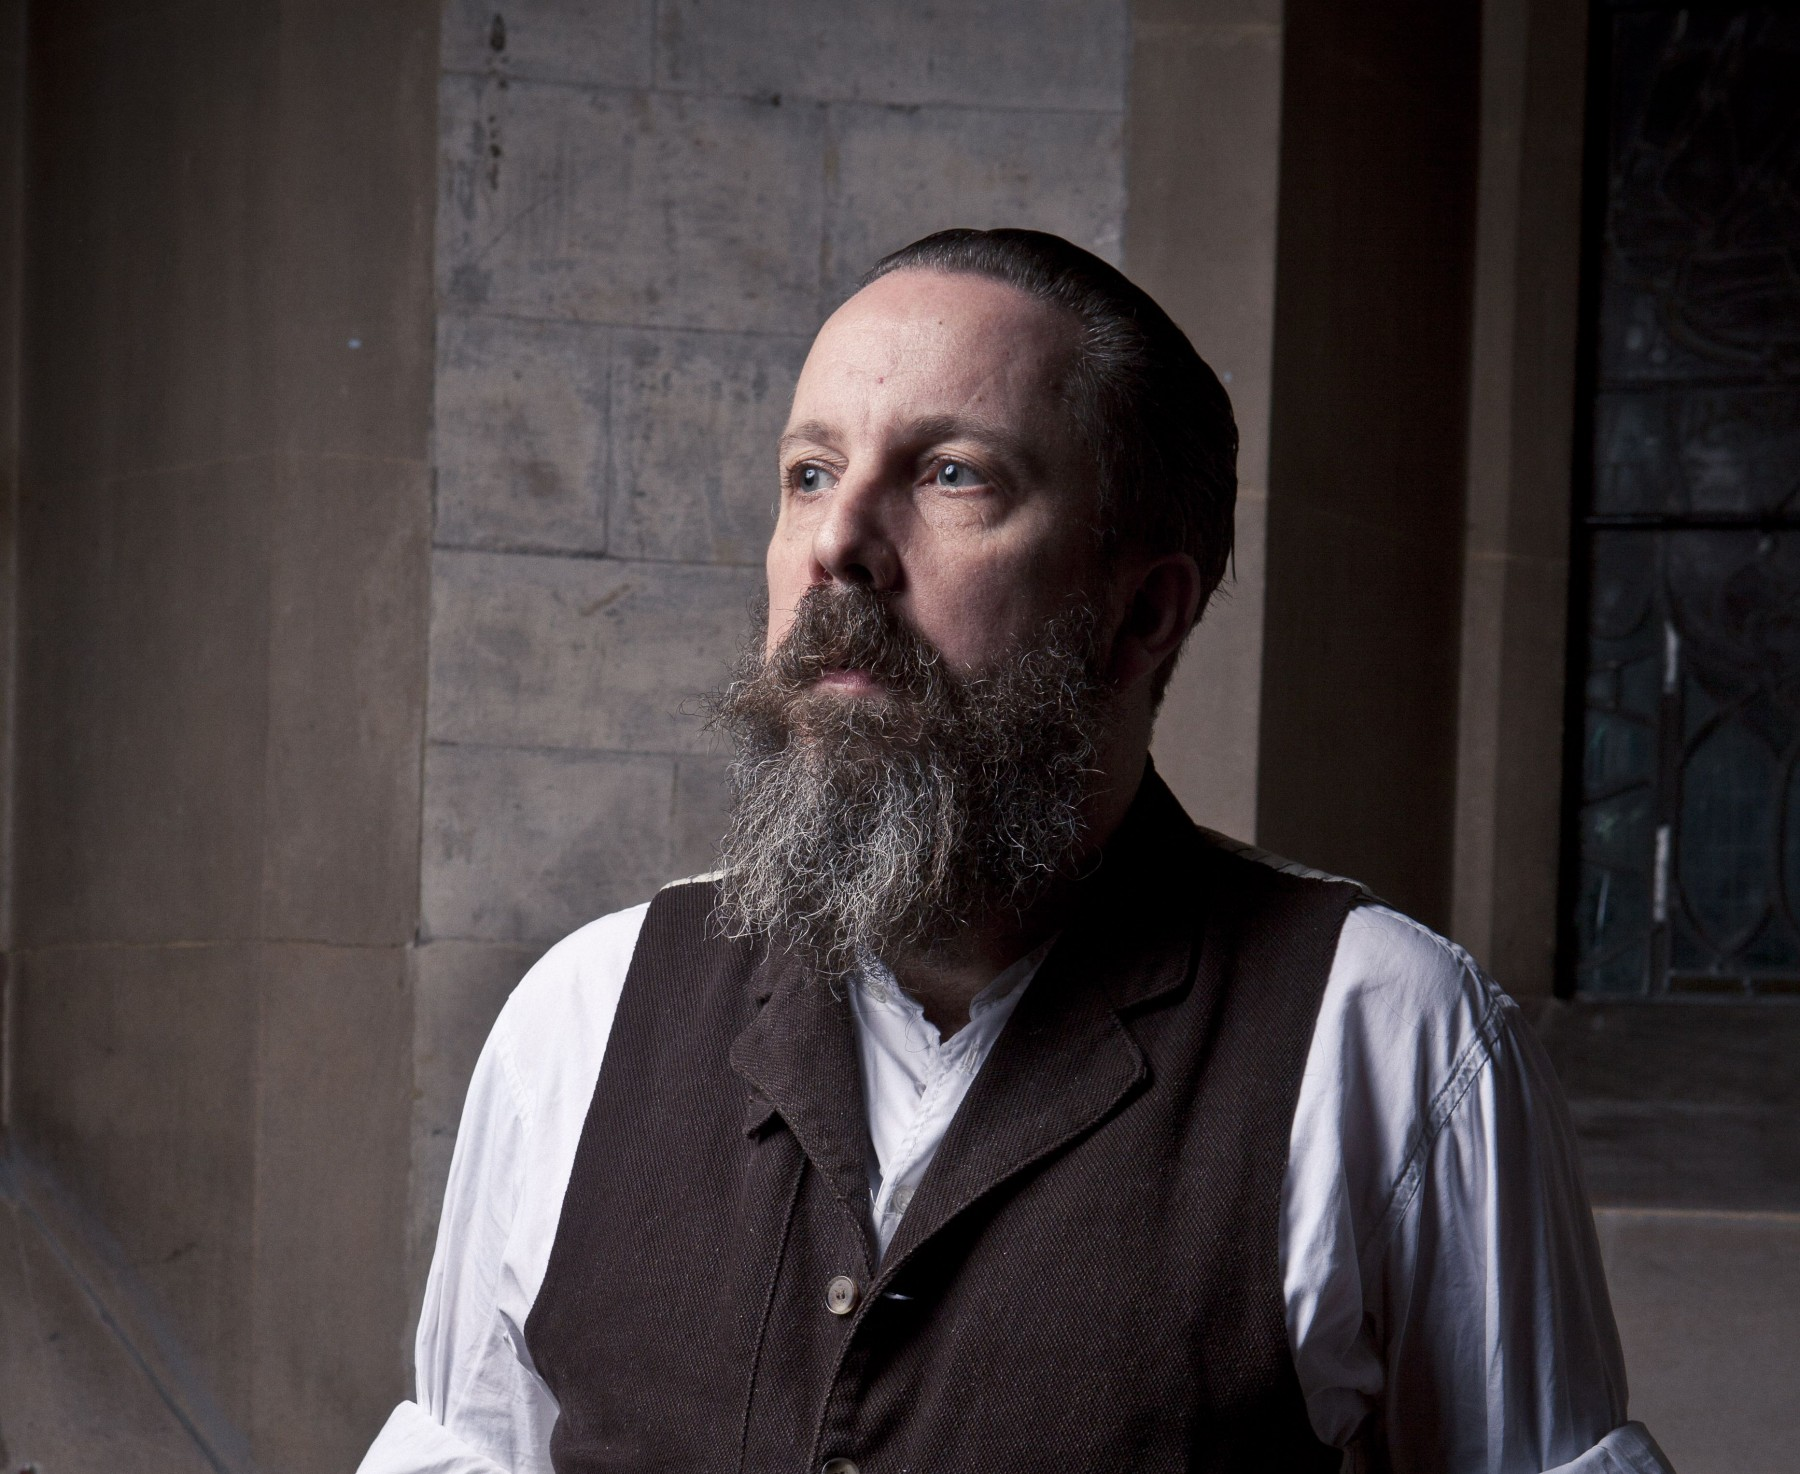 Andrew Weatherall curates a night of music at House of St Barnabas, Soho, London 7/7/12